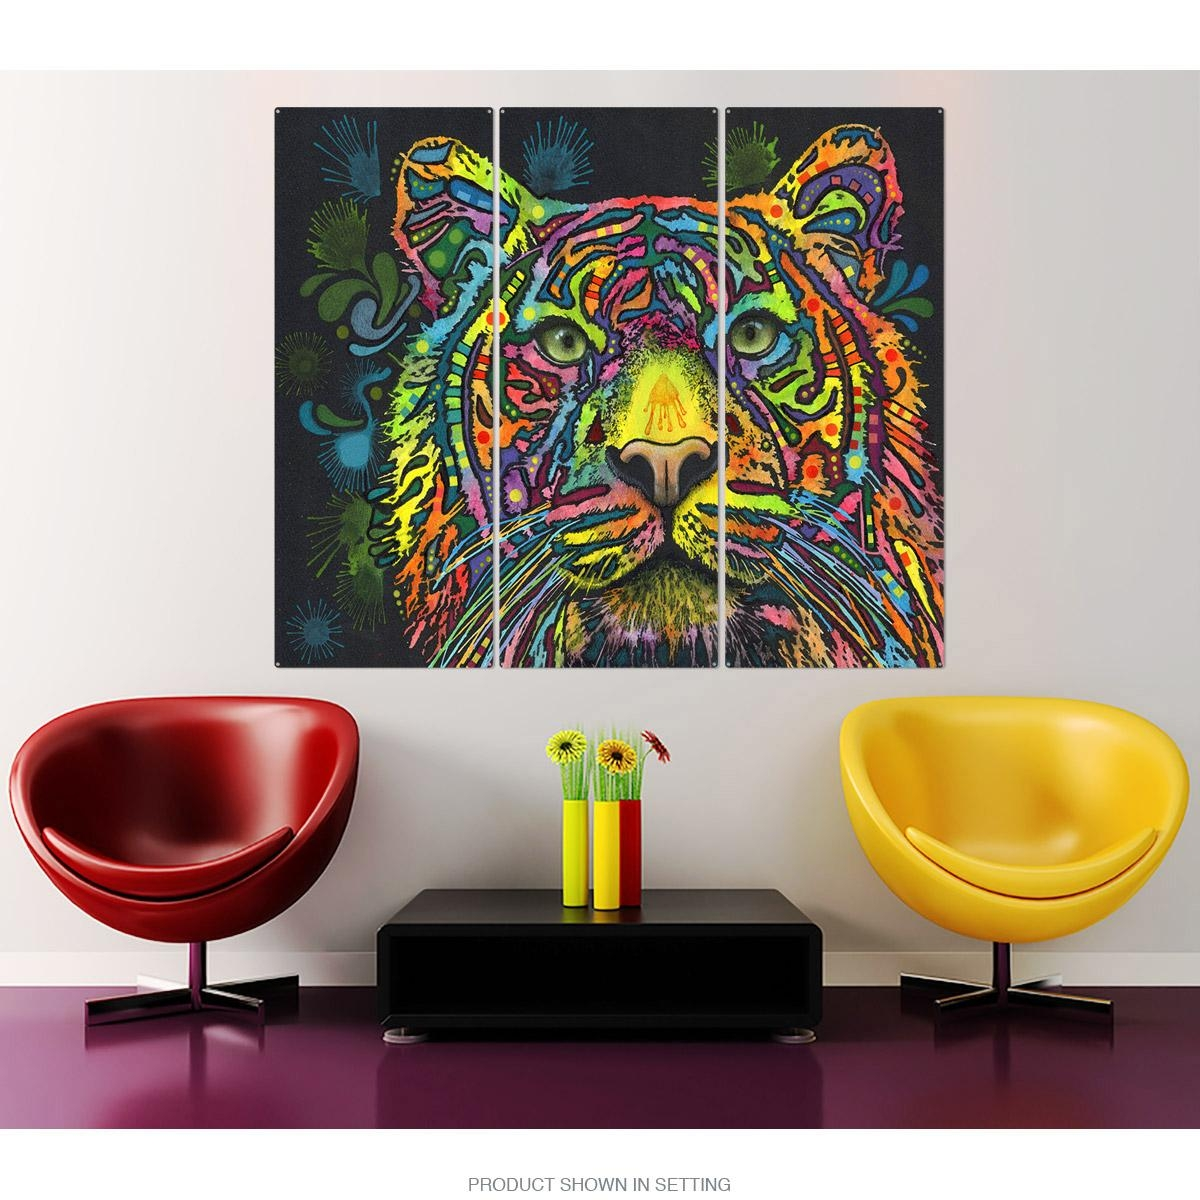 Tiger Big Cat Dean Russo Triptych Metal Wall Art Pop Art | Large For Large Triptych Wall Art (View 15 of 20)